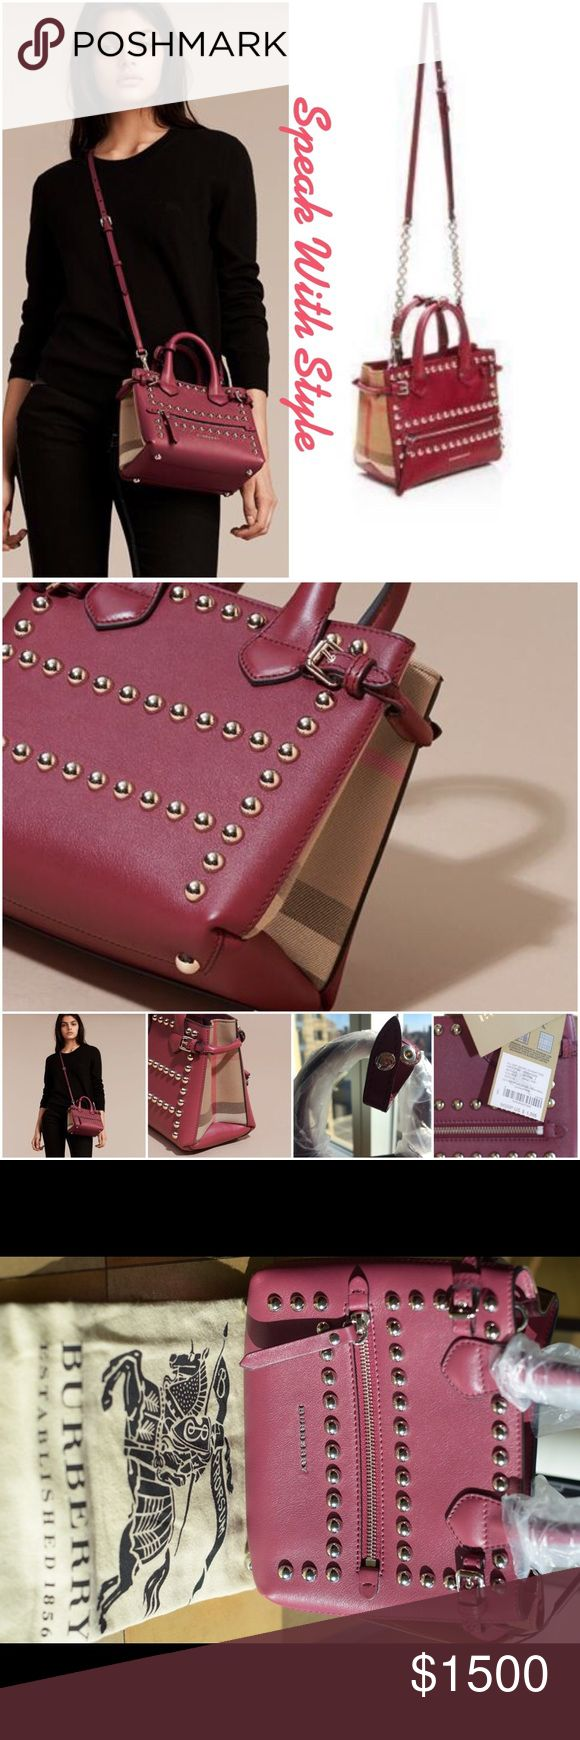 Burberry Banner Satchel In Studded Leather 💕 NWT! This Burberry banner studded leather satchel with English-woven house check cotton will be a beautiful addition to your handbag collection. The unique color will easily transition through every season. This satchel has a detachable shoulder strap that may be worn as a handbag, on your shoulder, or cross body. Comes with dust bag. It's truly an exquisite piece💕 Burberry Bags Shoulder Bags